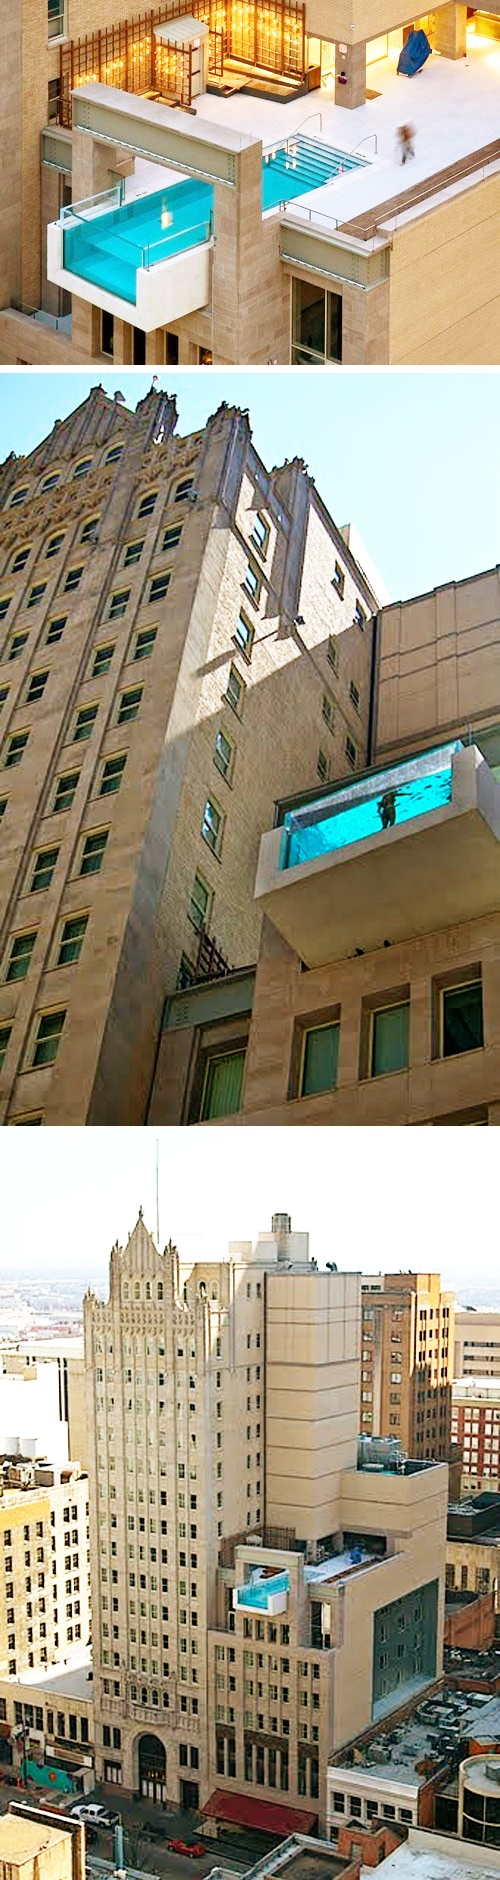 The joule hotel in dallas texas rooftop pool i want to for Pool design dallas texas